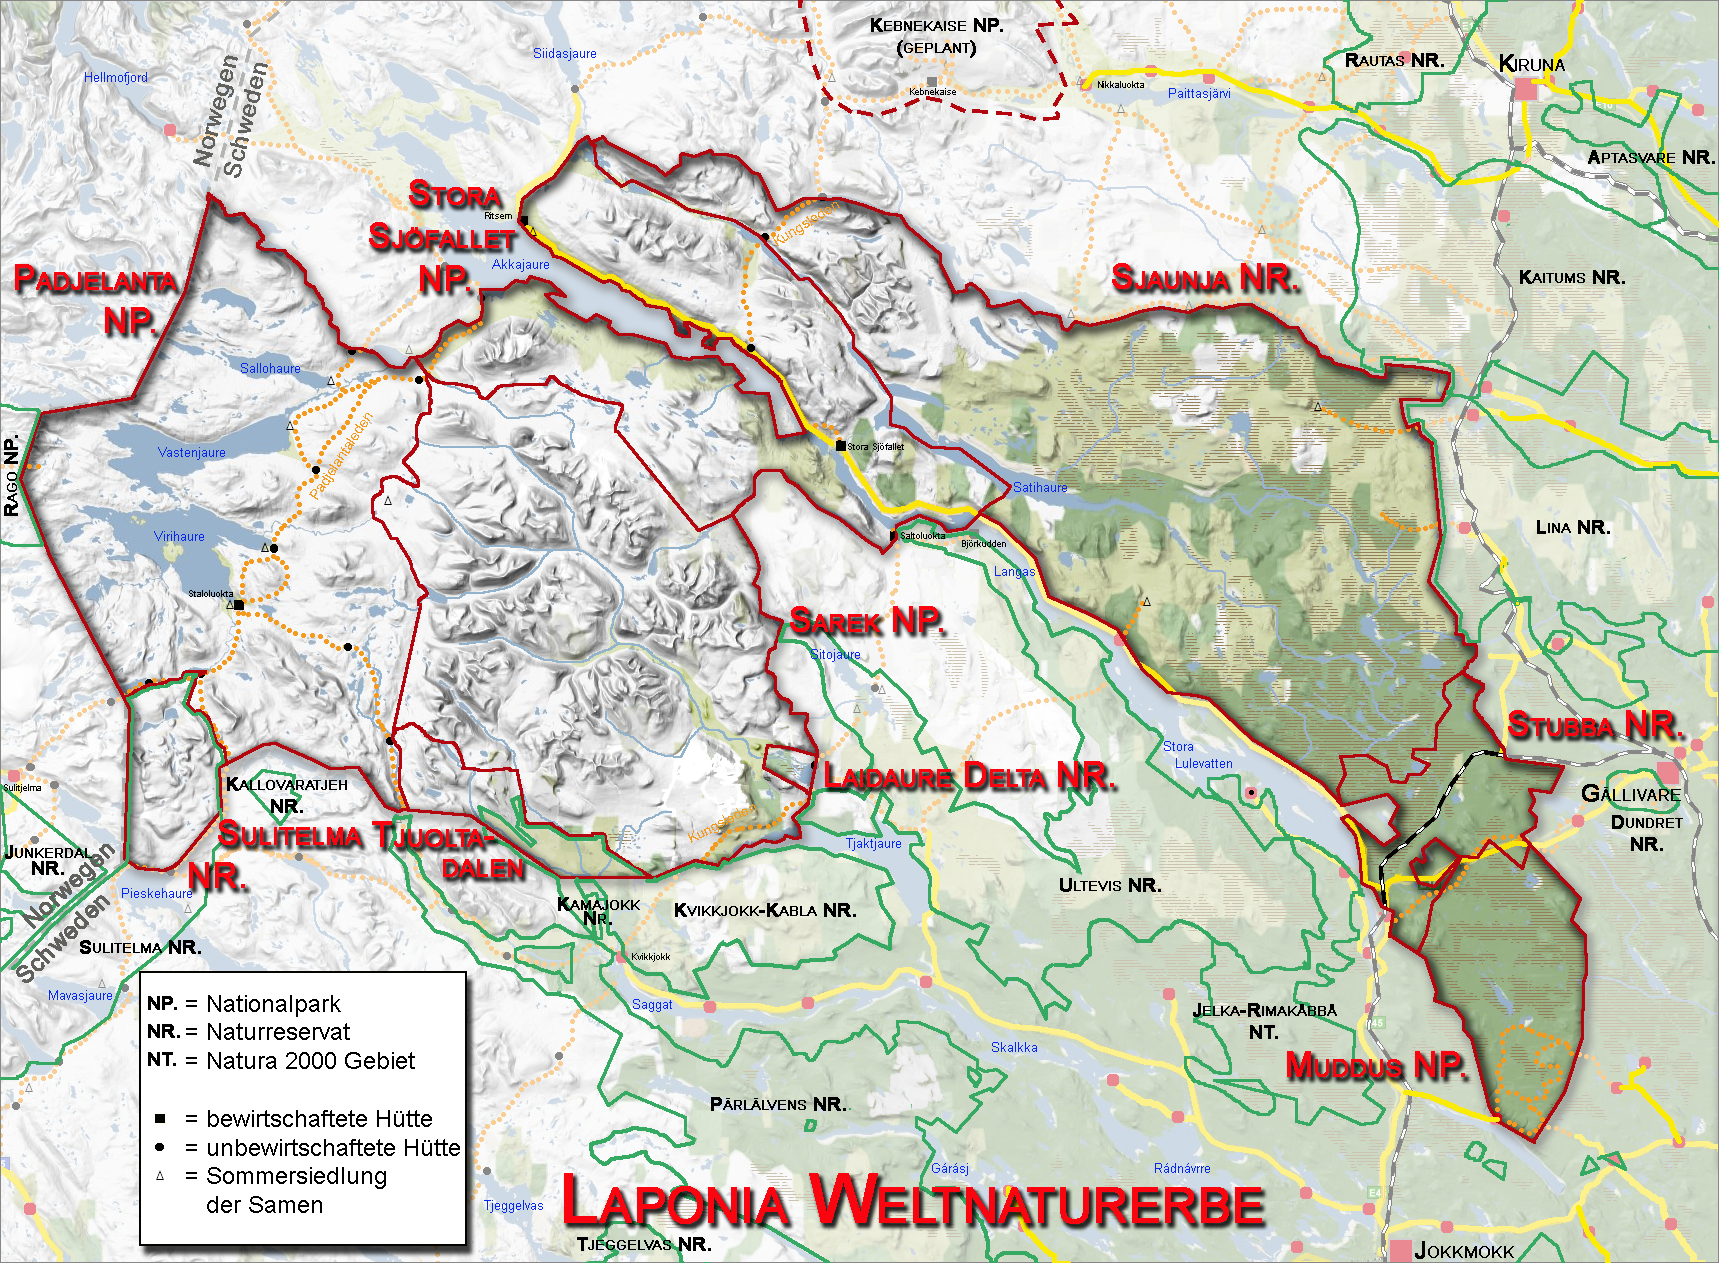 Weltnaturerbe Laponia (by Ökologix, Wikipedia, public domain)